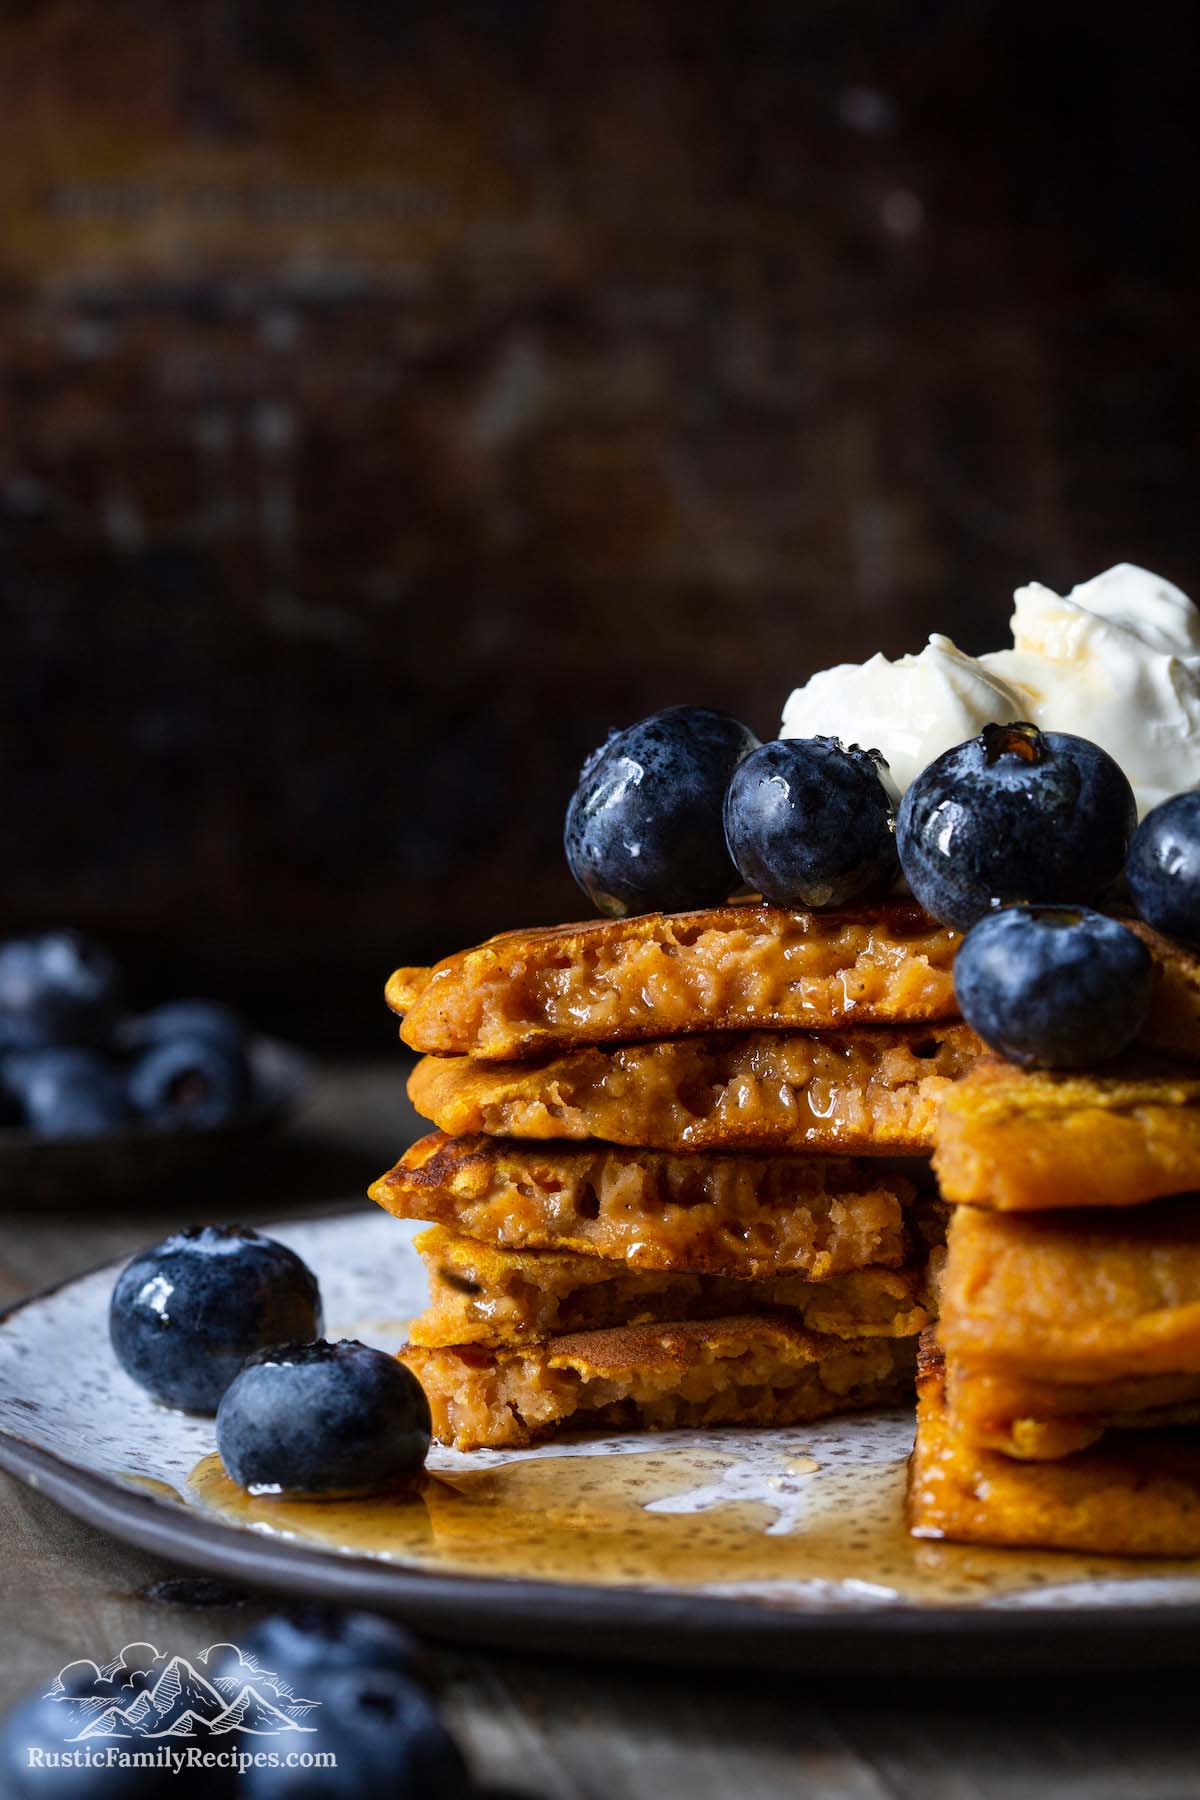 Stack of pumpkin pancakes with blueberries and whipped cream, with a slice taken out